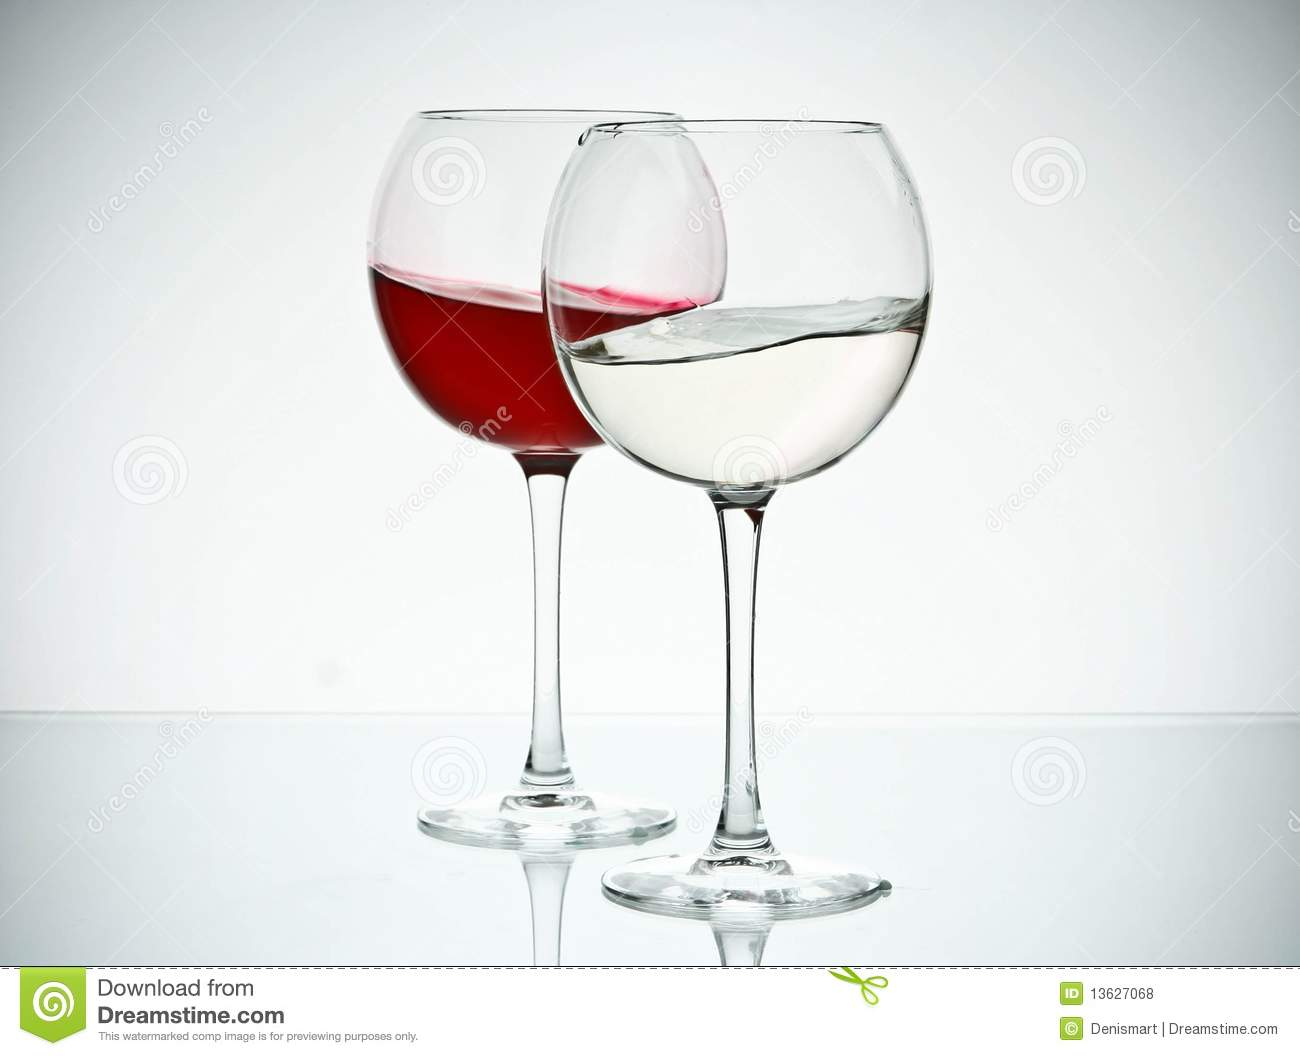 Wine And Water Glasses Royalty Free Stock Photos - Image: 13627068